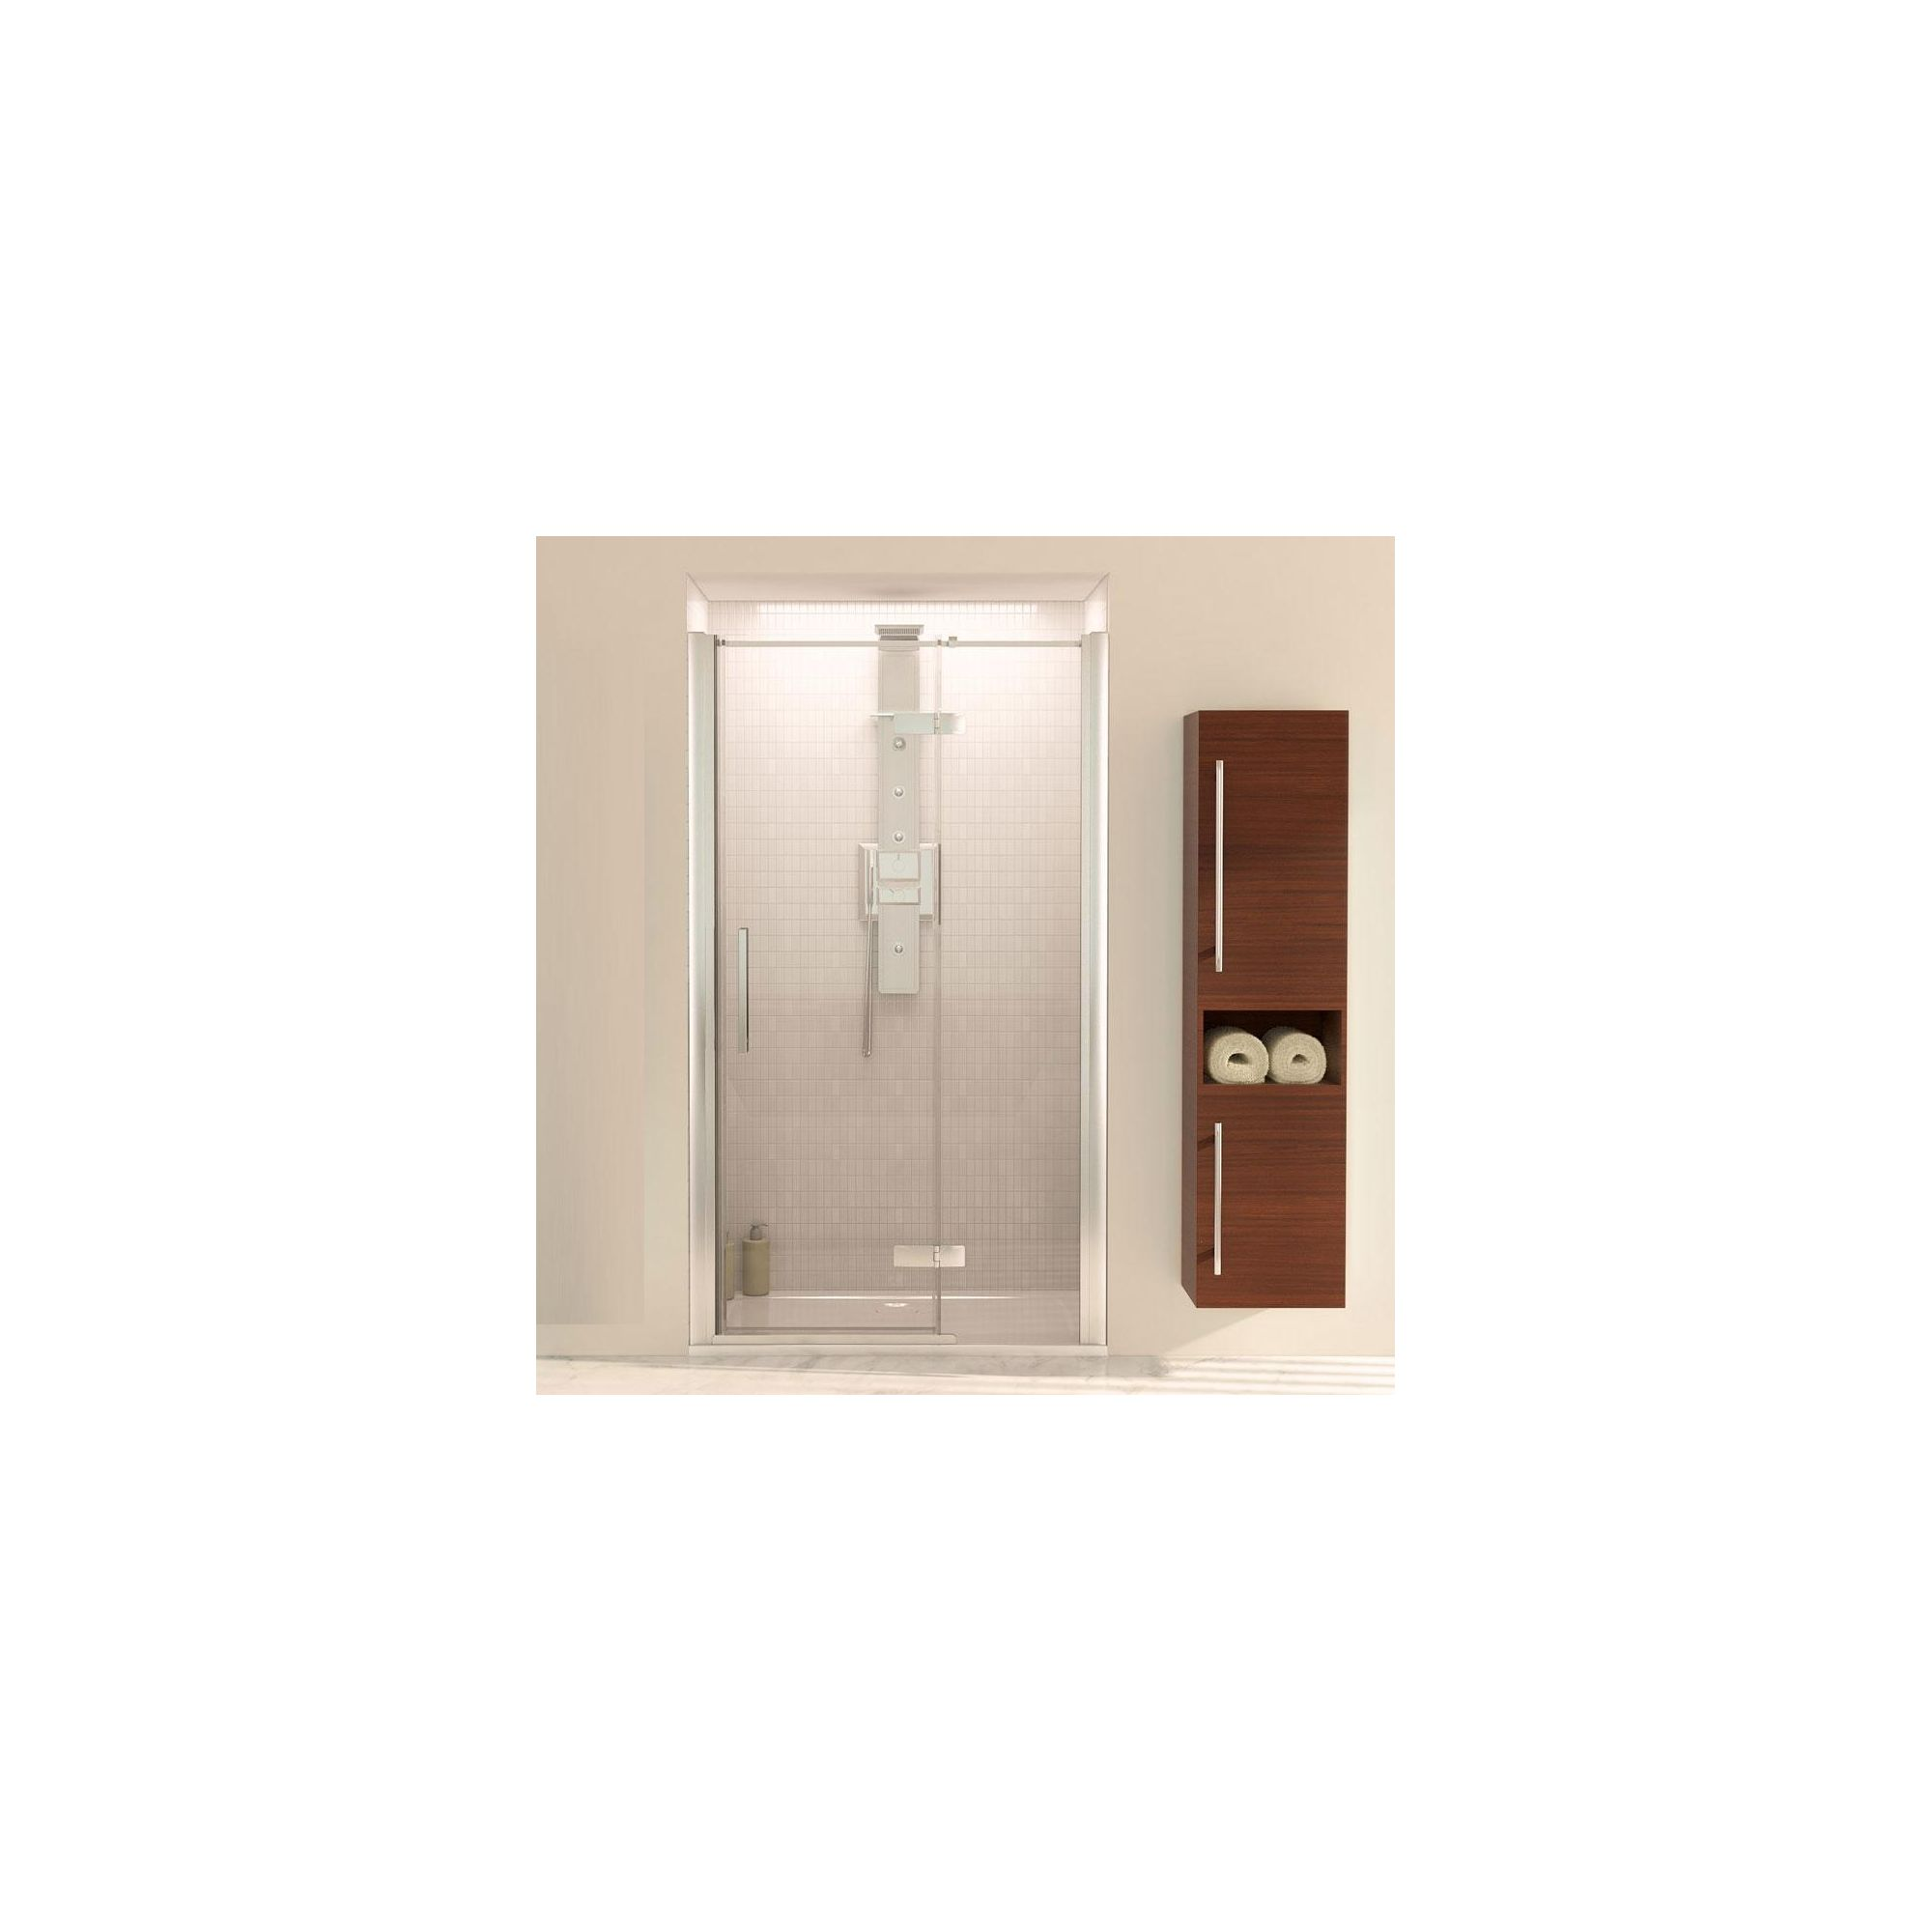 Aqualux AQUA8 Hinge Inline Pivot Shower Door and Side Panel, 1200mm x 900mm, Polished Silver Frame, 8mm Glass at Tesco Direct